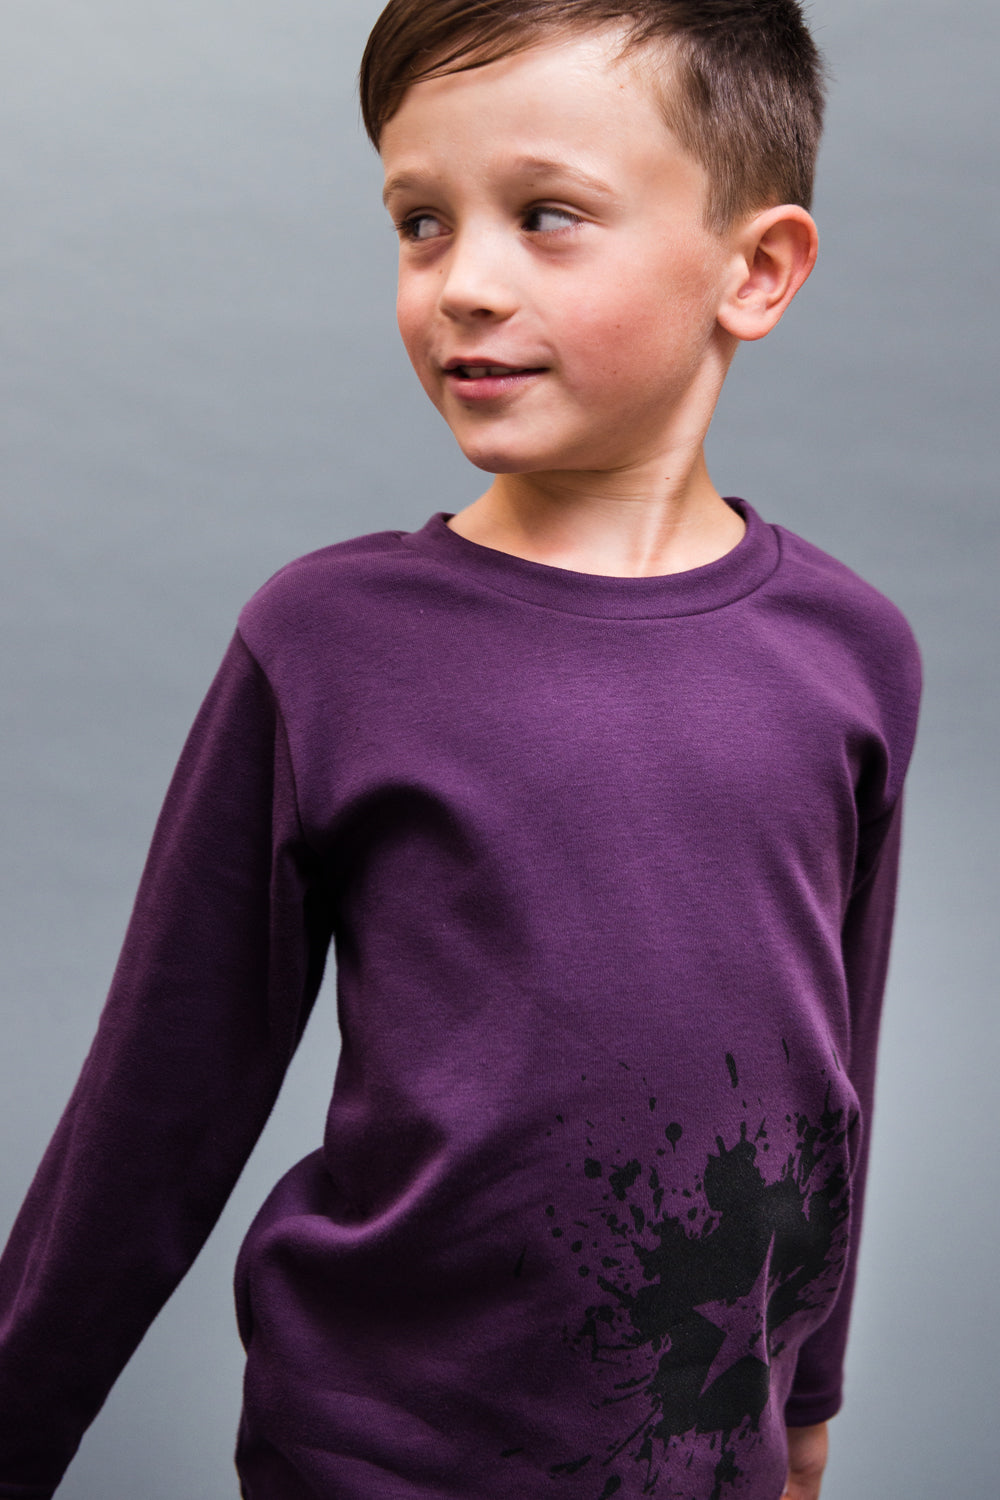 Plum coloured long sleeve t-shirt 100% cotton with ink splat star design